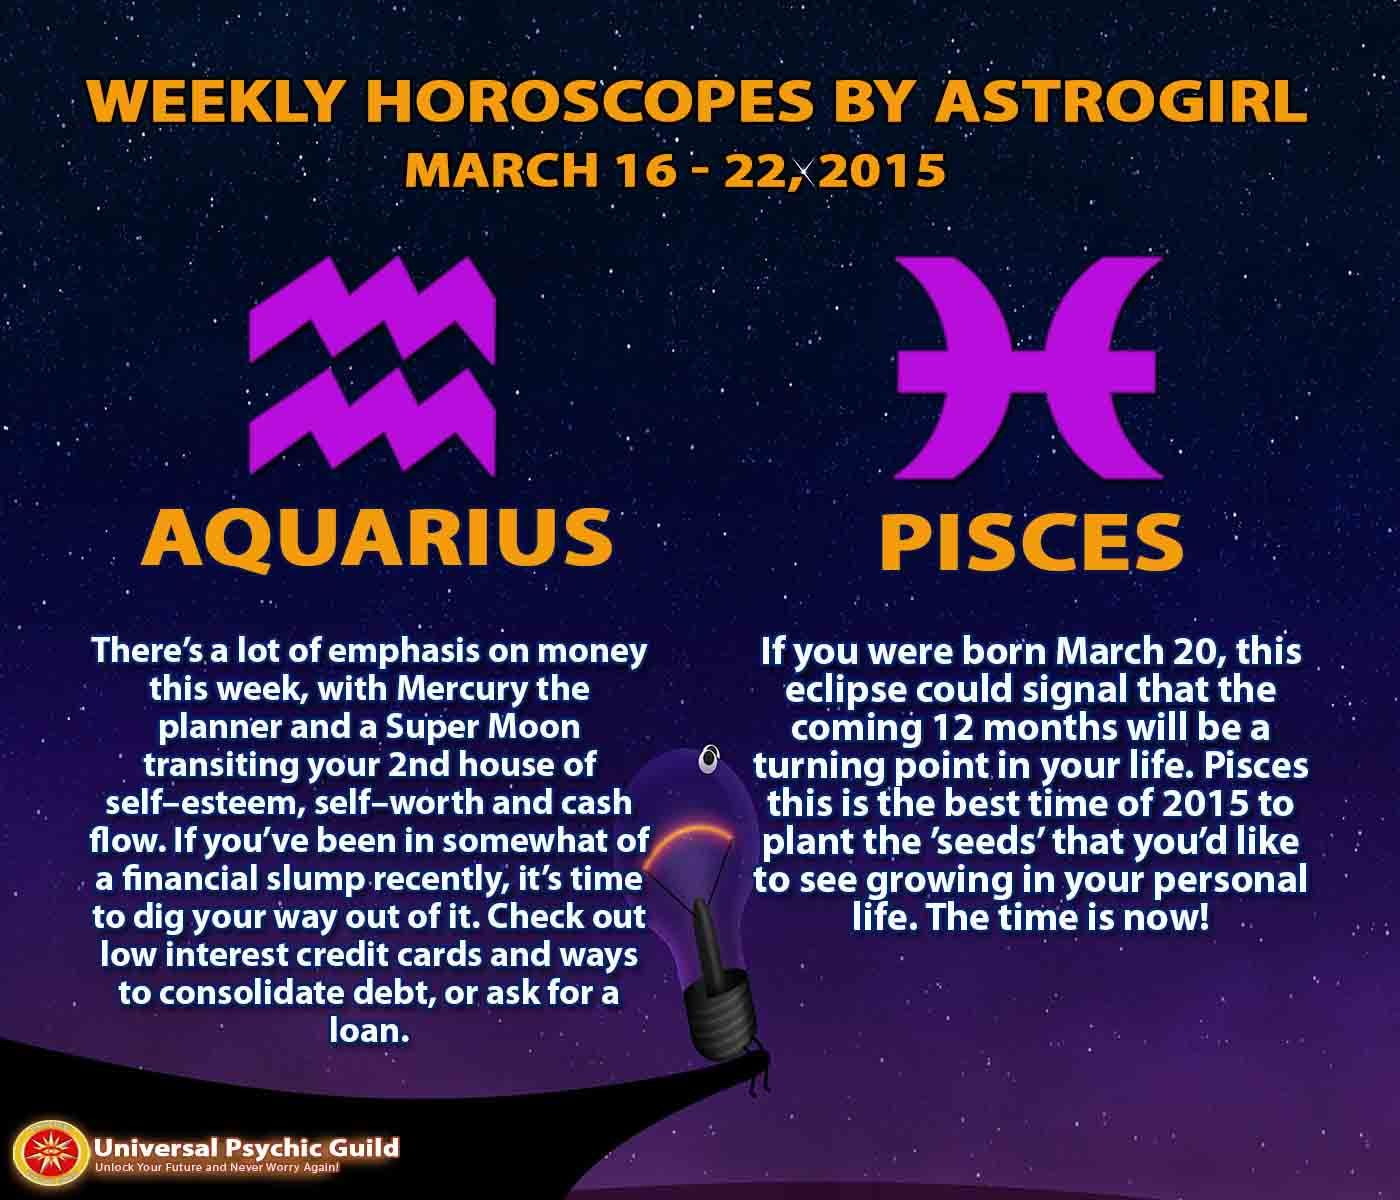 aquarius weekly horoscope march 22